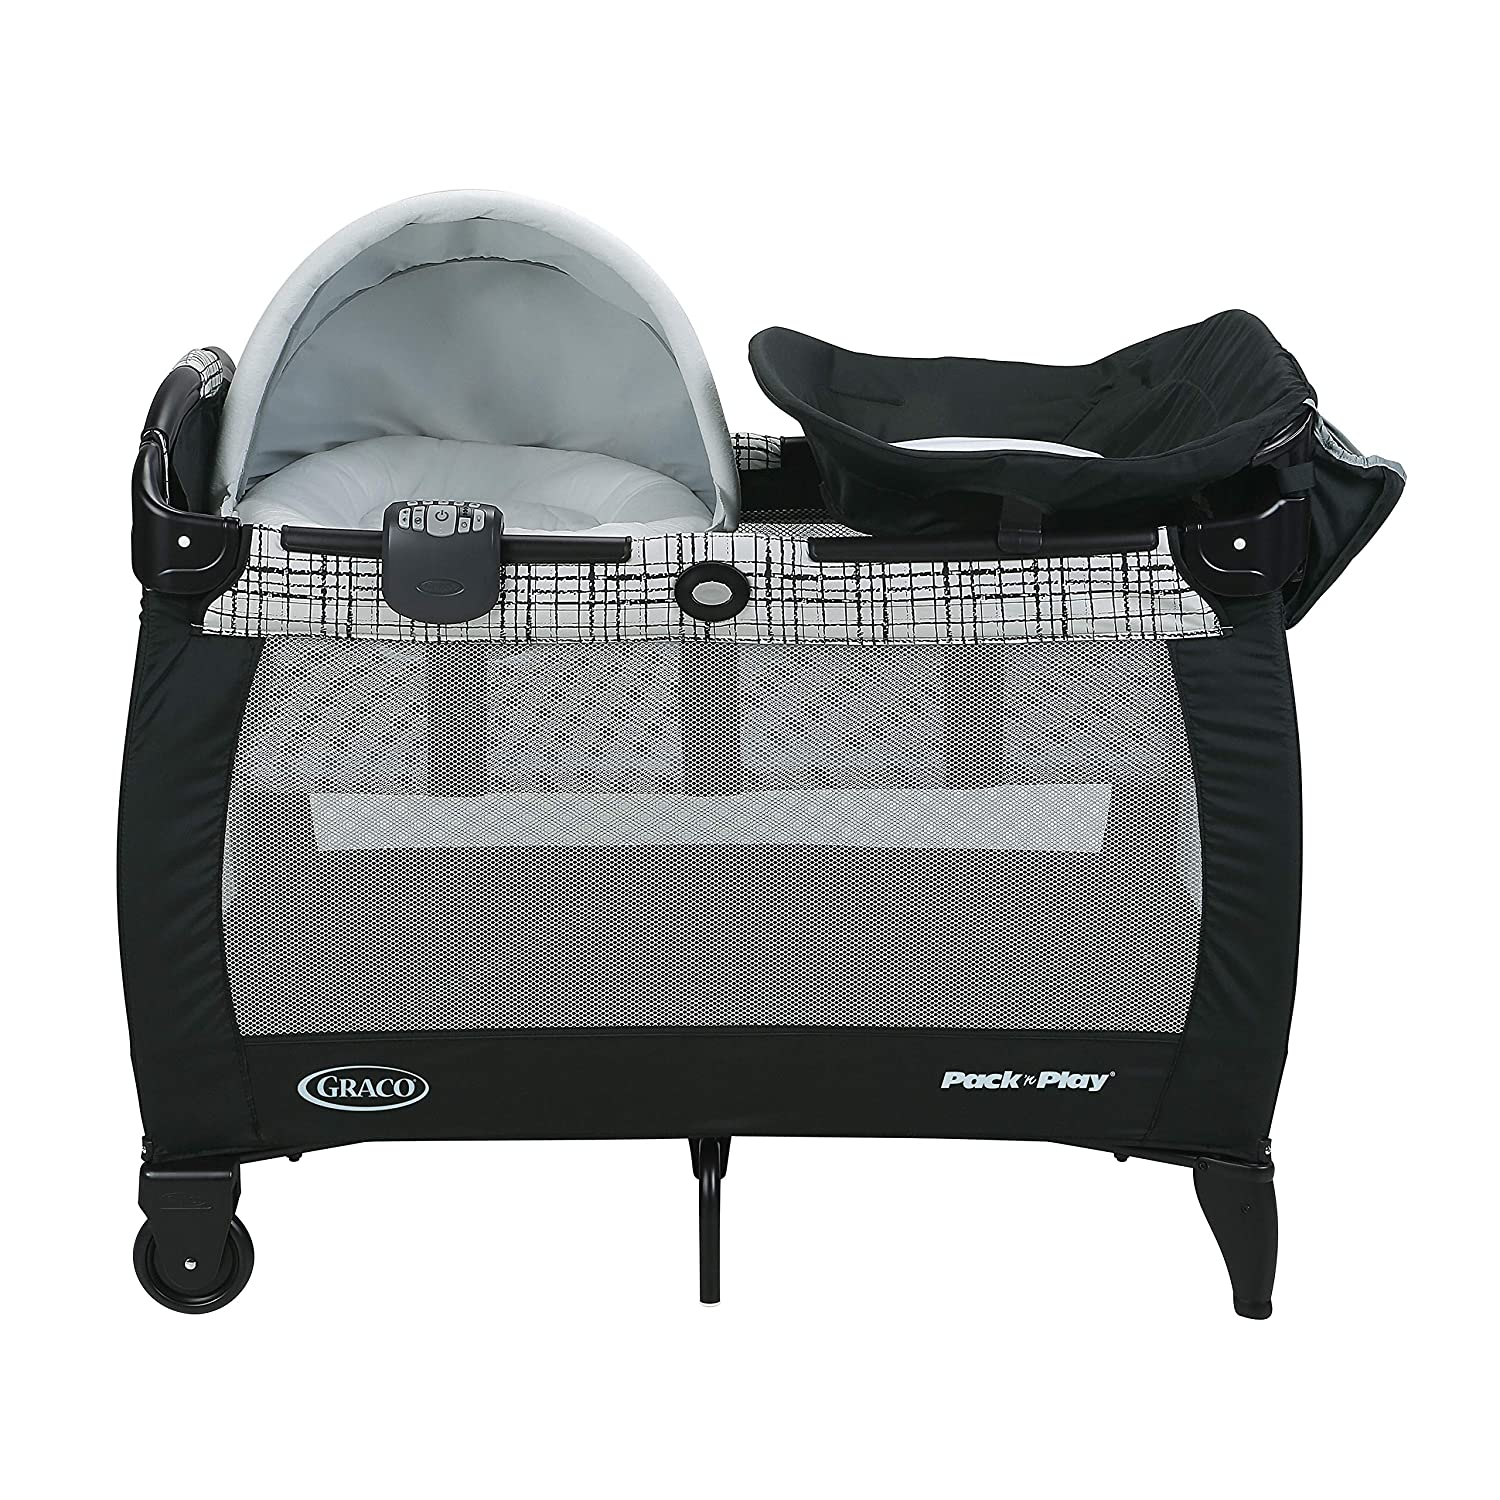 Graco Pack n Play Newborn Napper Playard with Soothe Surround Technology Includes Newborn Napper, Full-Size Infant Bassinet, and Diaper Changer, Teigen